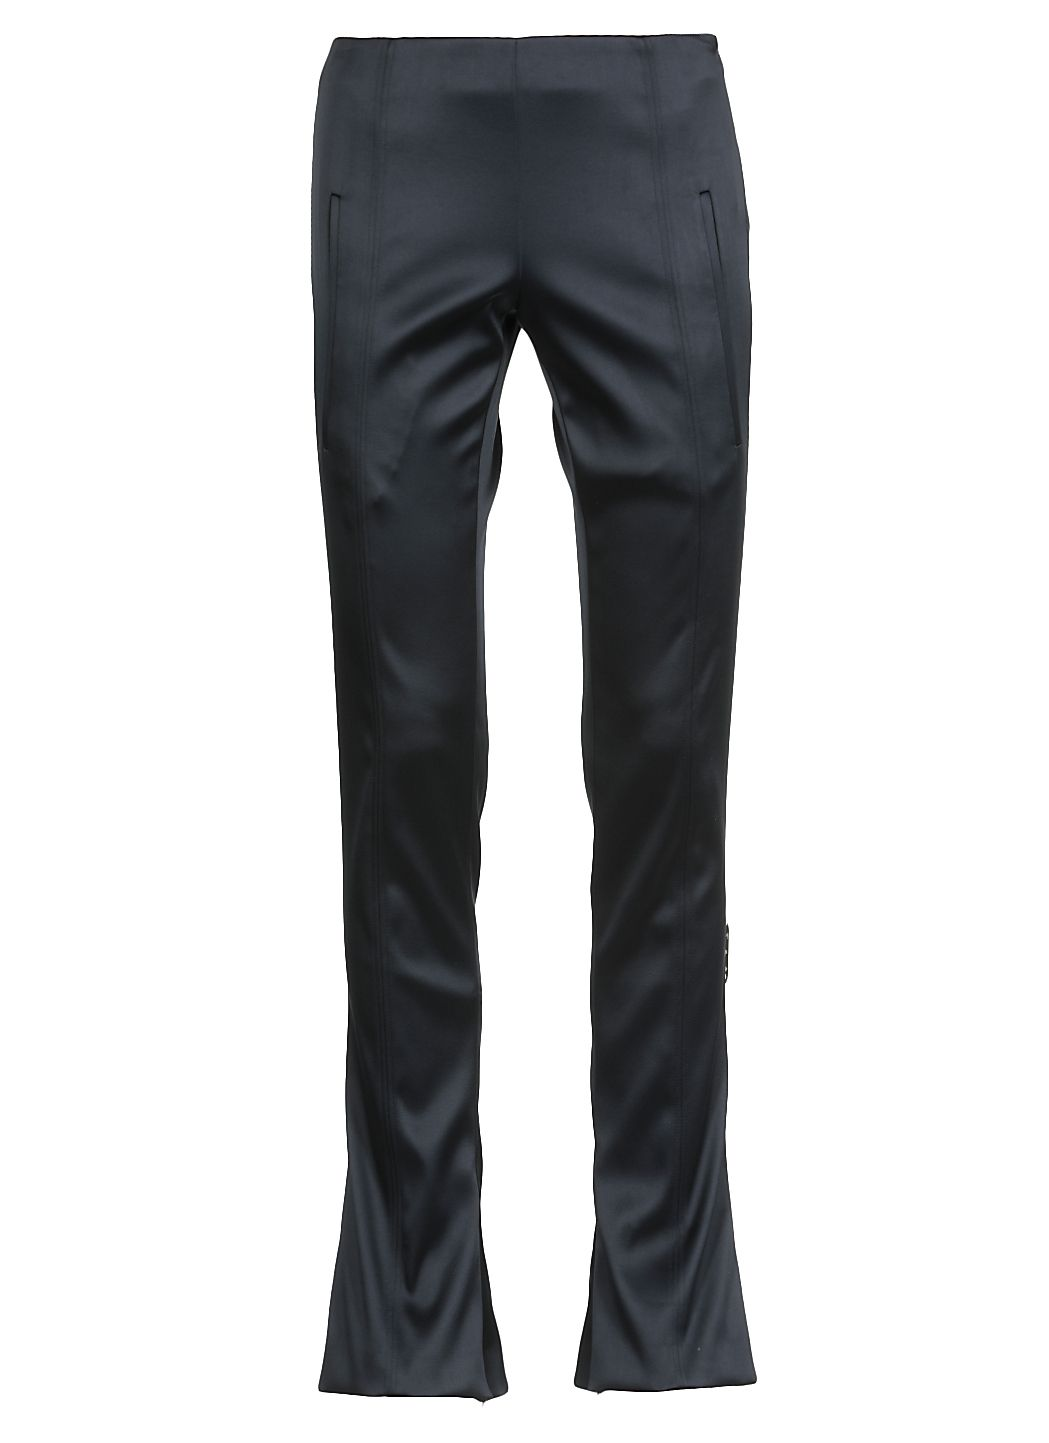 Satin Skinny Flared Trousers